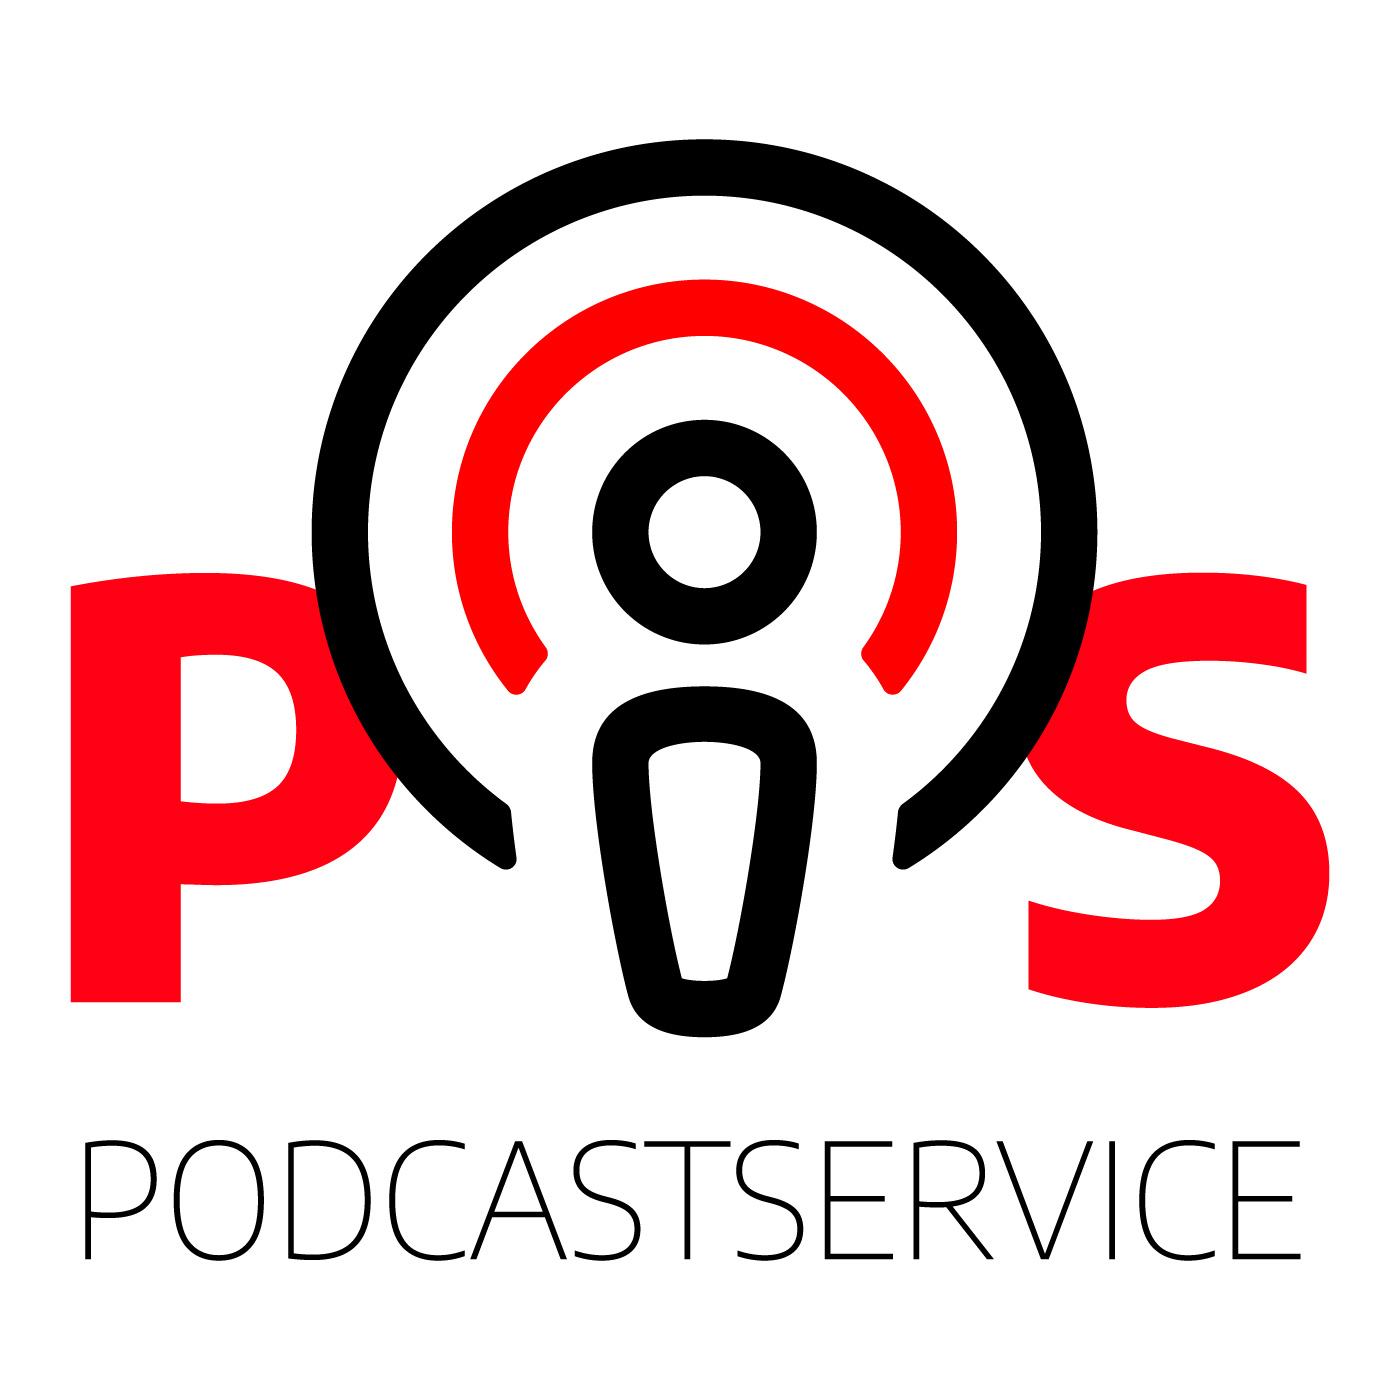 Podcastservice.nl